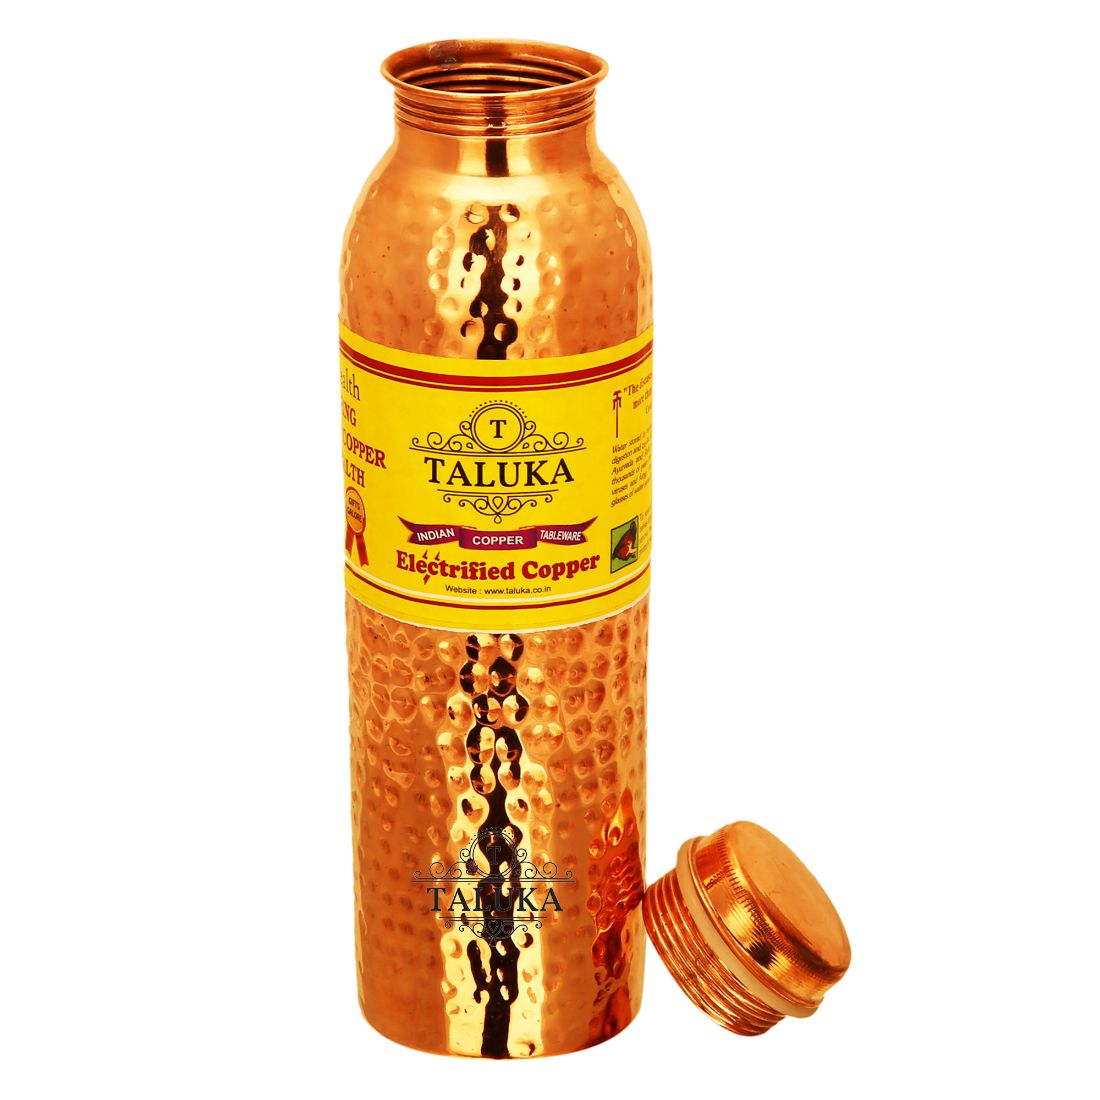 Copper Hammered Leak Proof Joint Free Water Bottle 1000 ML 1 PC, 1 PC Copper Brass Lid Jug  2000 ML - Storage water